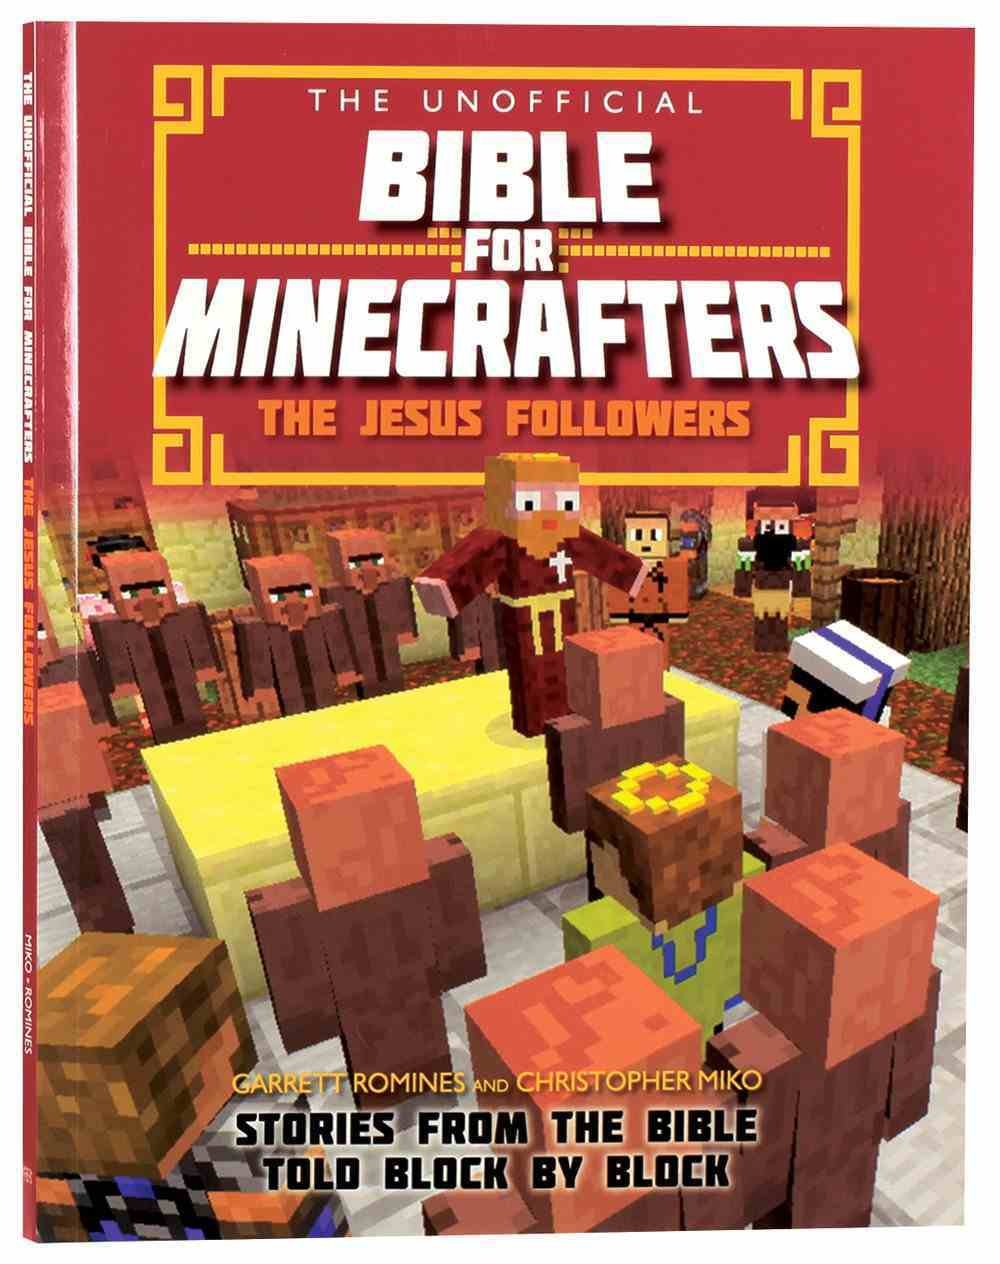 The Unofficial Bible For Minecrafters: The Jesus Followers Paperback